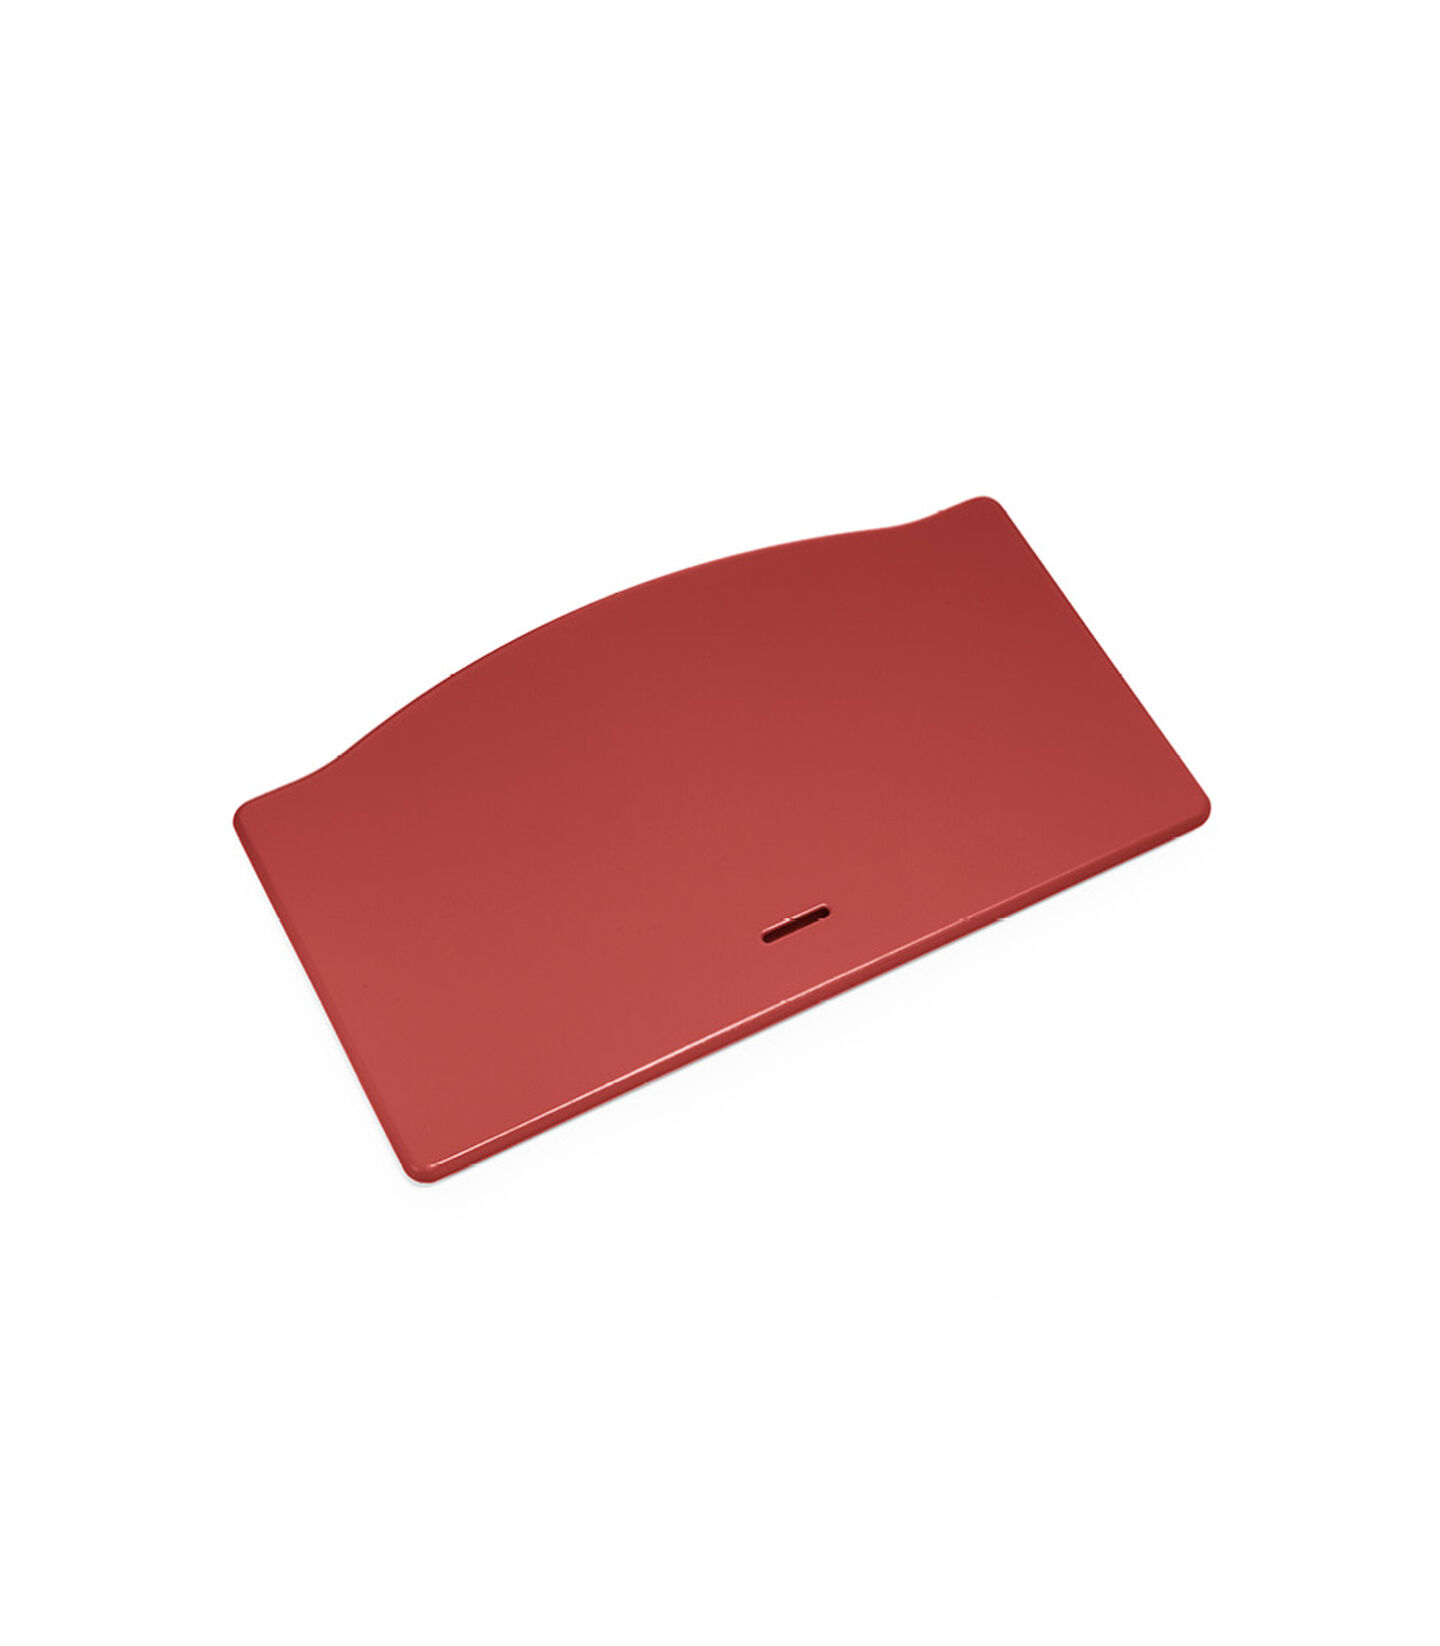 Assise Tripp Trapp® Rouge chaud, Rouge chaud, mainview view 1